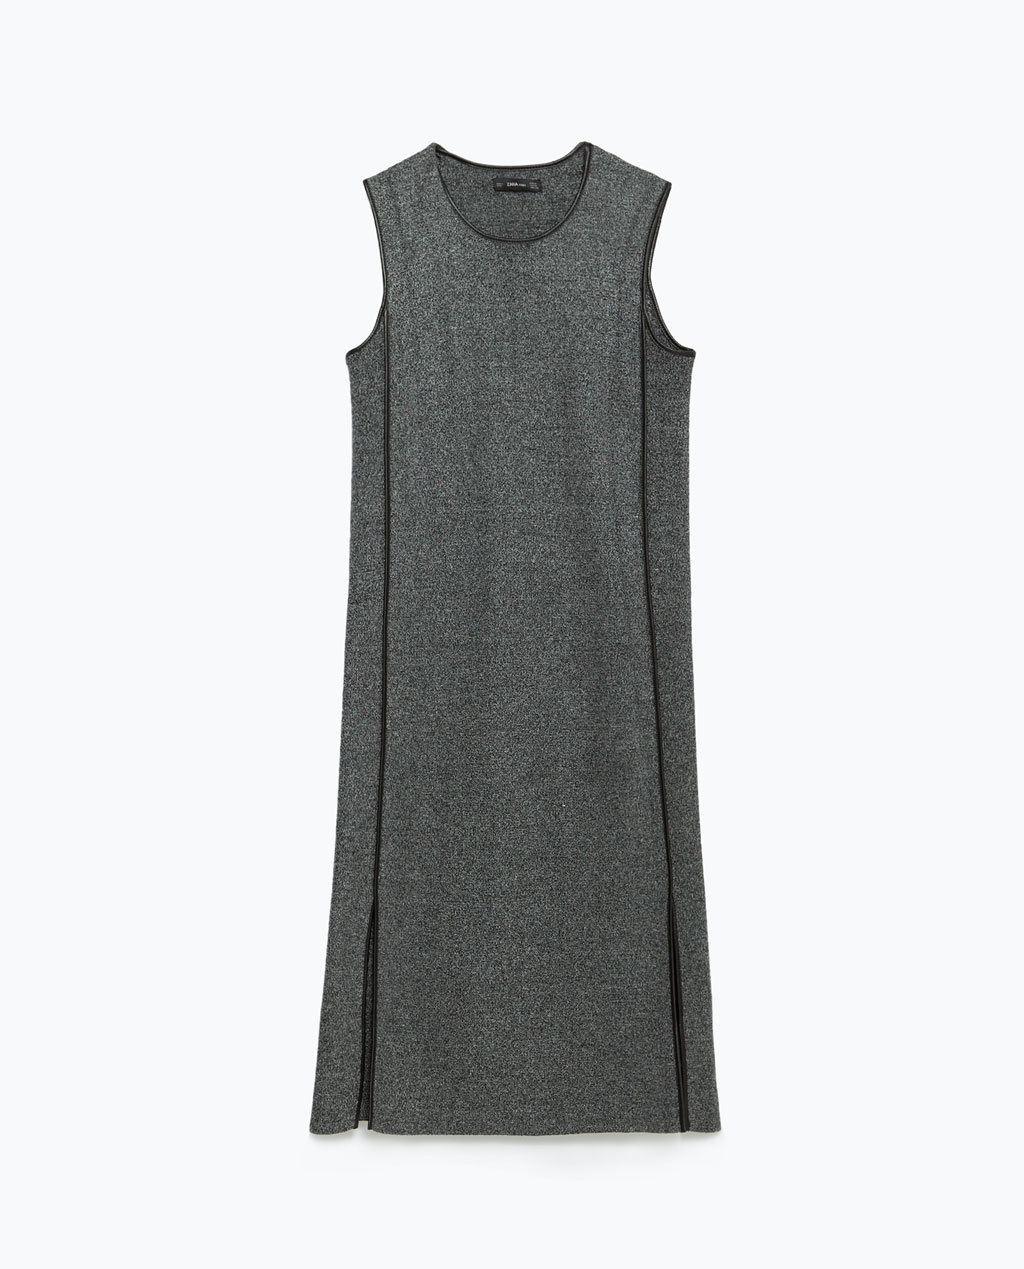 Round Neck Dress - style: shift; neckline: round neck; pattern: plain; sleeve style: sleeveless; predominant colour: mid grey; secondary colour: black; occasions: casual, creative work; length: just above the knee; fit: straight cut; sleeve length: sleeveless; pattern type: fabric; texture group: jersey - stretchy/drapey; season: a/w 2015; wardrobe: basic